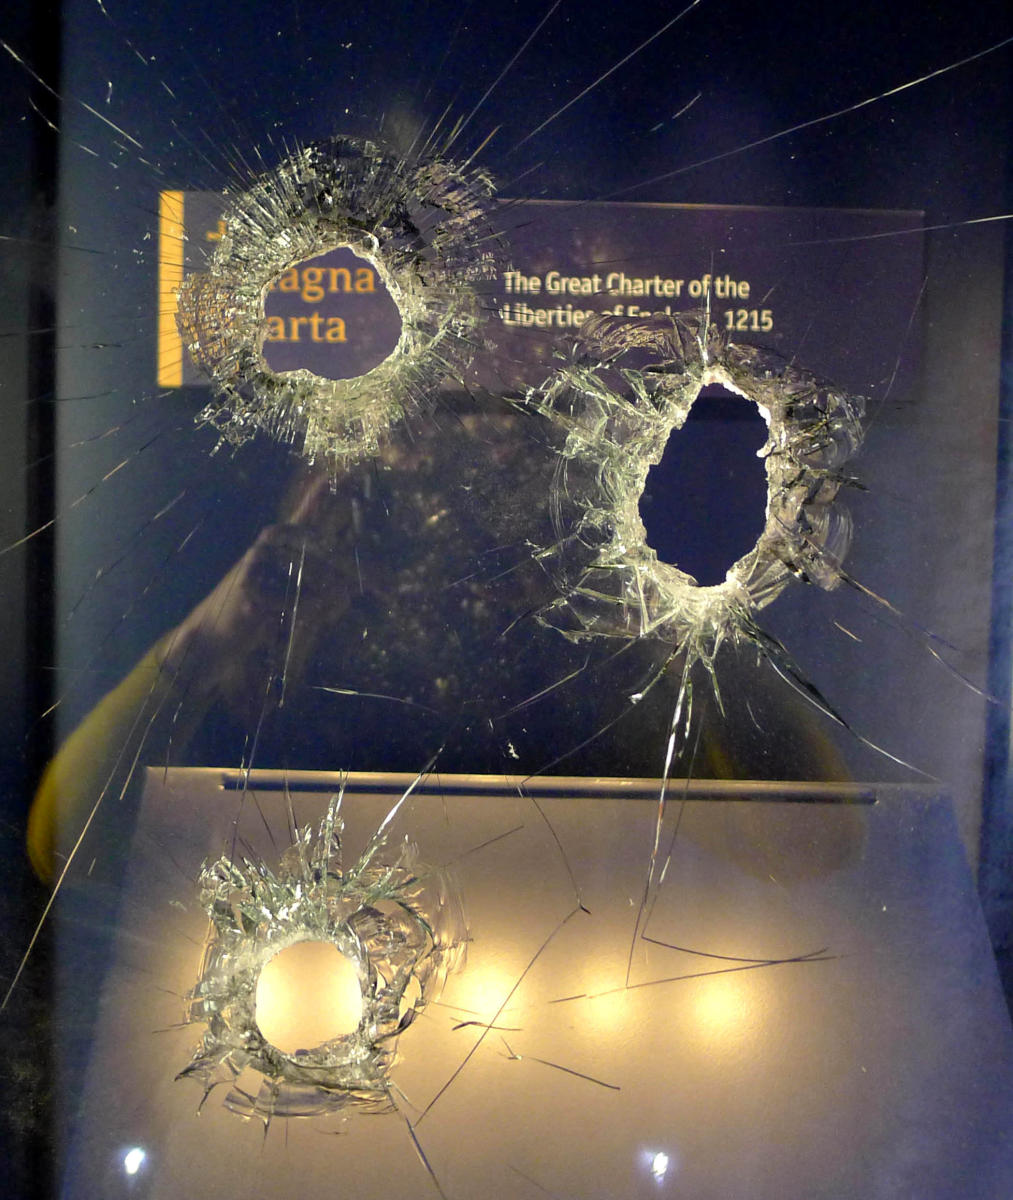 Damage can be seen to the display case that held the Salisbury Magna Carta, one of the original four remaining Magna Carta documents, at Salisbury Cathedral in Salisbury. Reuters photo